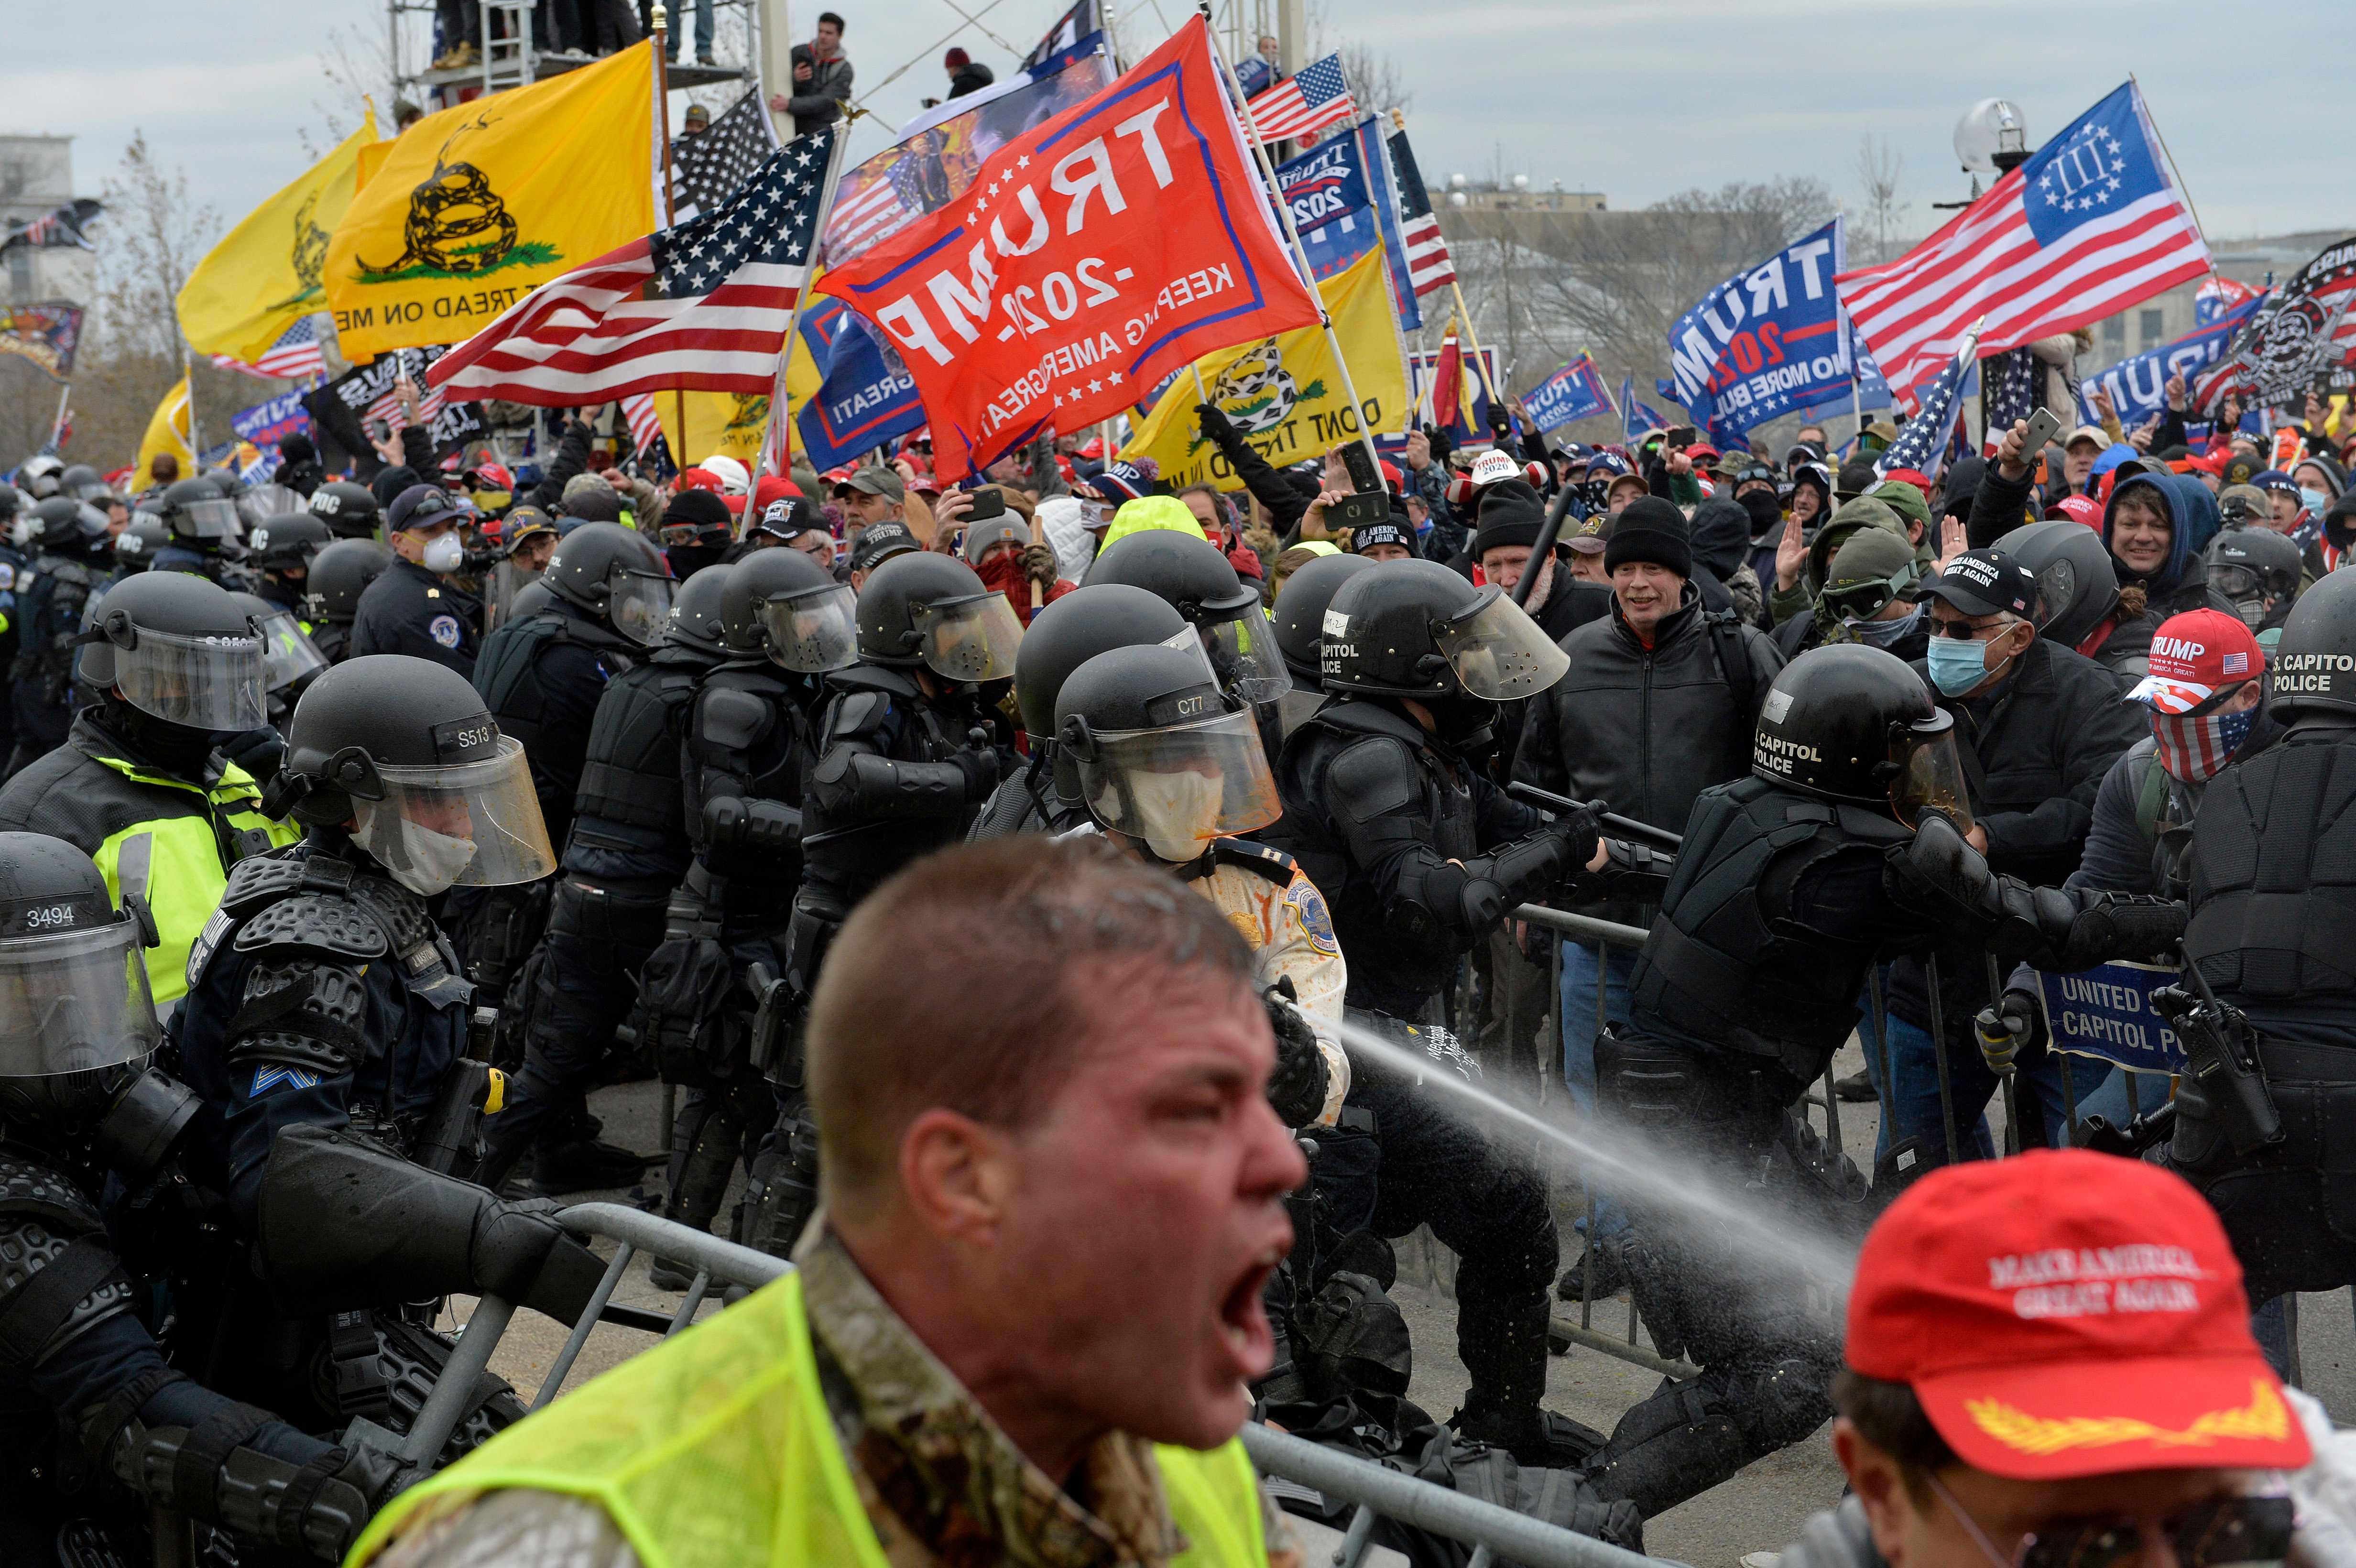 (FILES) In this file photo taken on January 6, 2021 Trump supporters clash with police and security forces as people try to storm the US Capitol in Washington DC. - Facebook on February 11, 2021 said it had tackled abuse on its network surrounding the deadly attack on the US Capitol by supporters of former president Donald Trump. The social network, which has been criticized for allowing some users to orchestrate violence that played out on January 6, also said it fed information to law enforcement agencies during the insurrection. (Photo by Joseph Prezioso / AFP) (Photo by JOSEPH PREZIOSO/AFP via Getty Images) ORG XMIT: 0